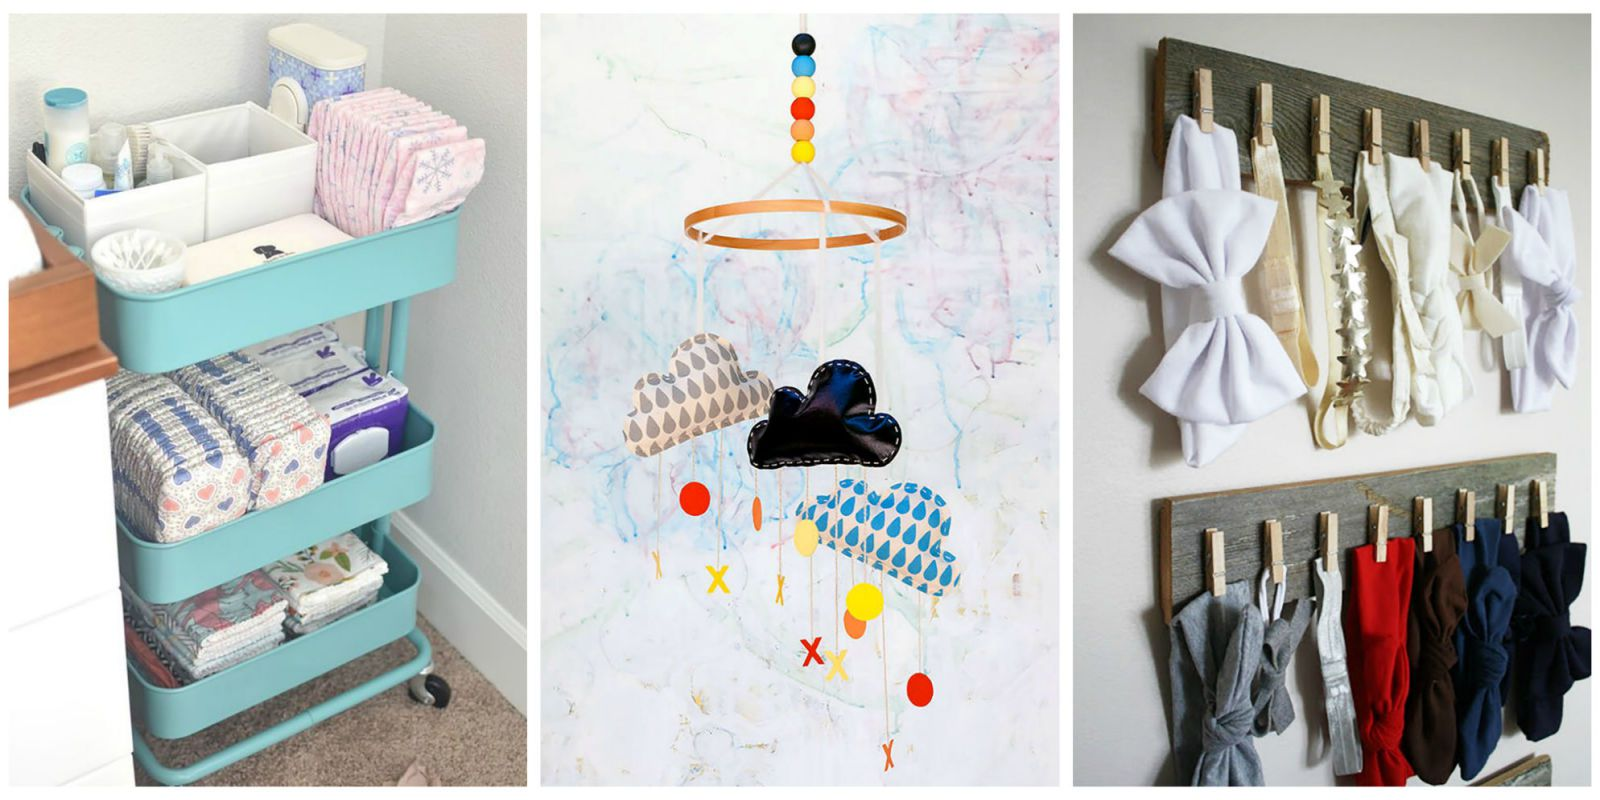 Whether you have space to spare, or you need to get creative in a small  home, try these ideas for room decor, storage, organization and other pre- baby